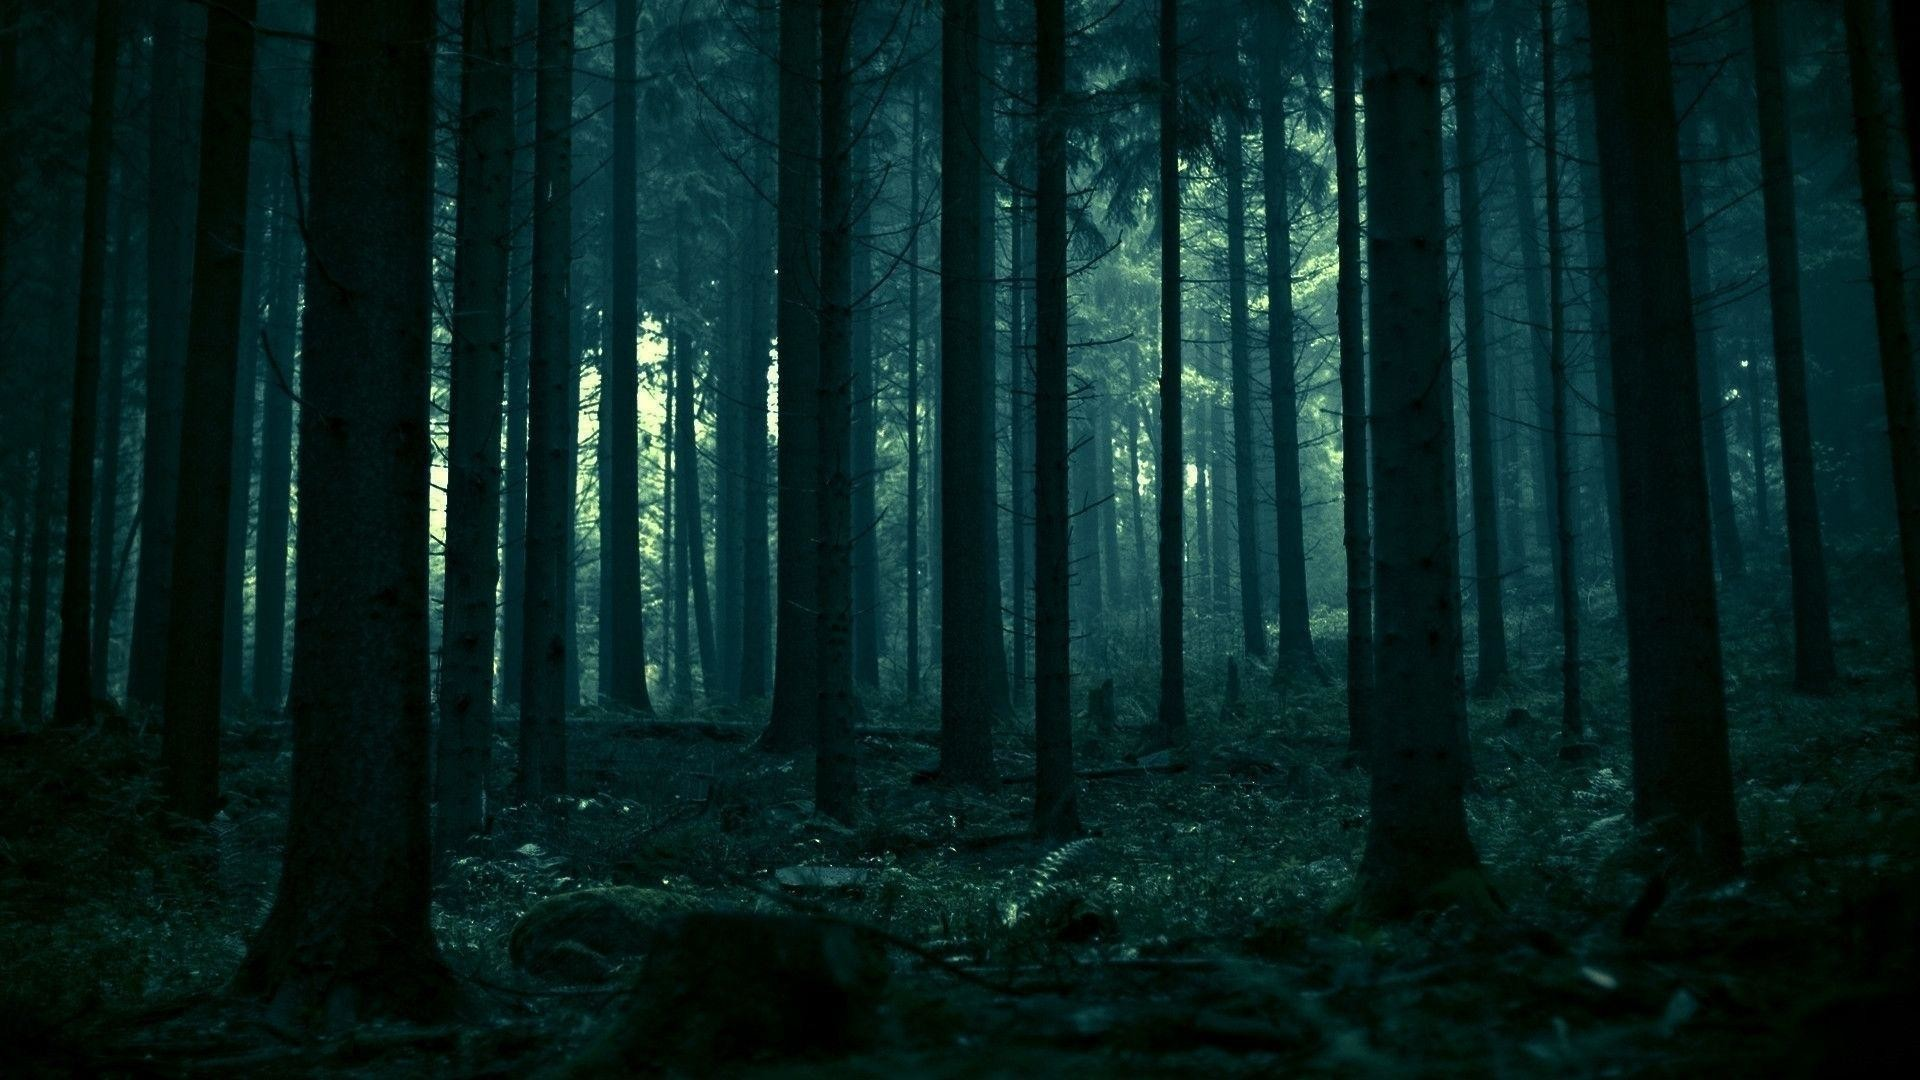 1920x1080 Dark Forest HD Photo Wallpaper - HD Wallpapers